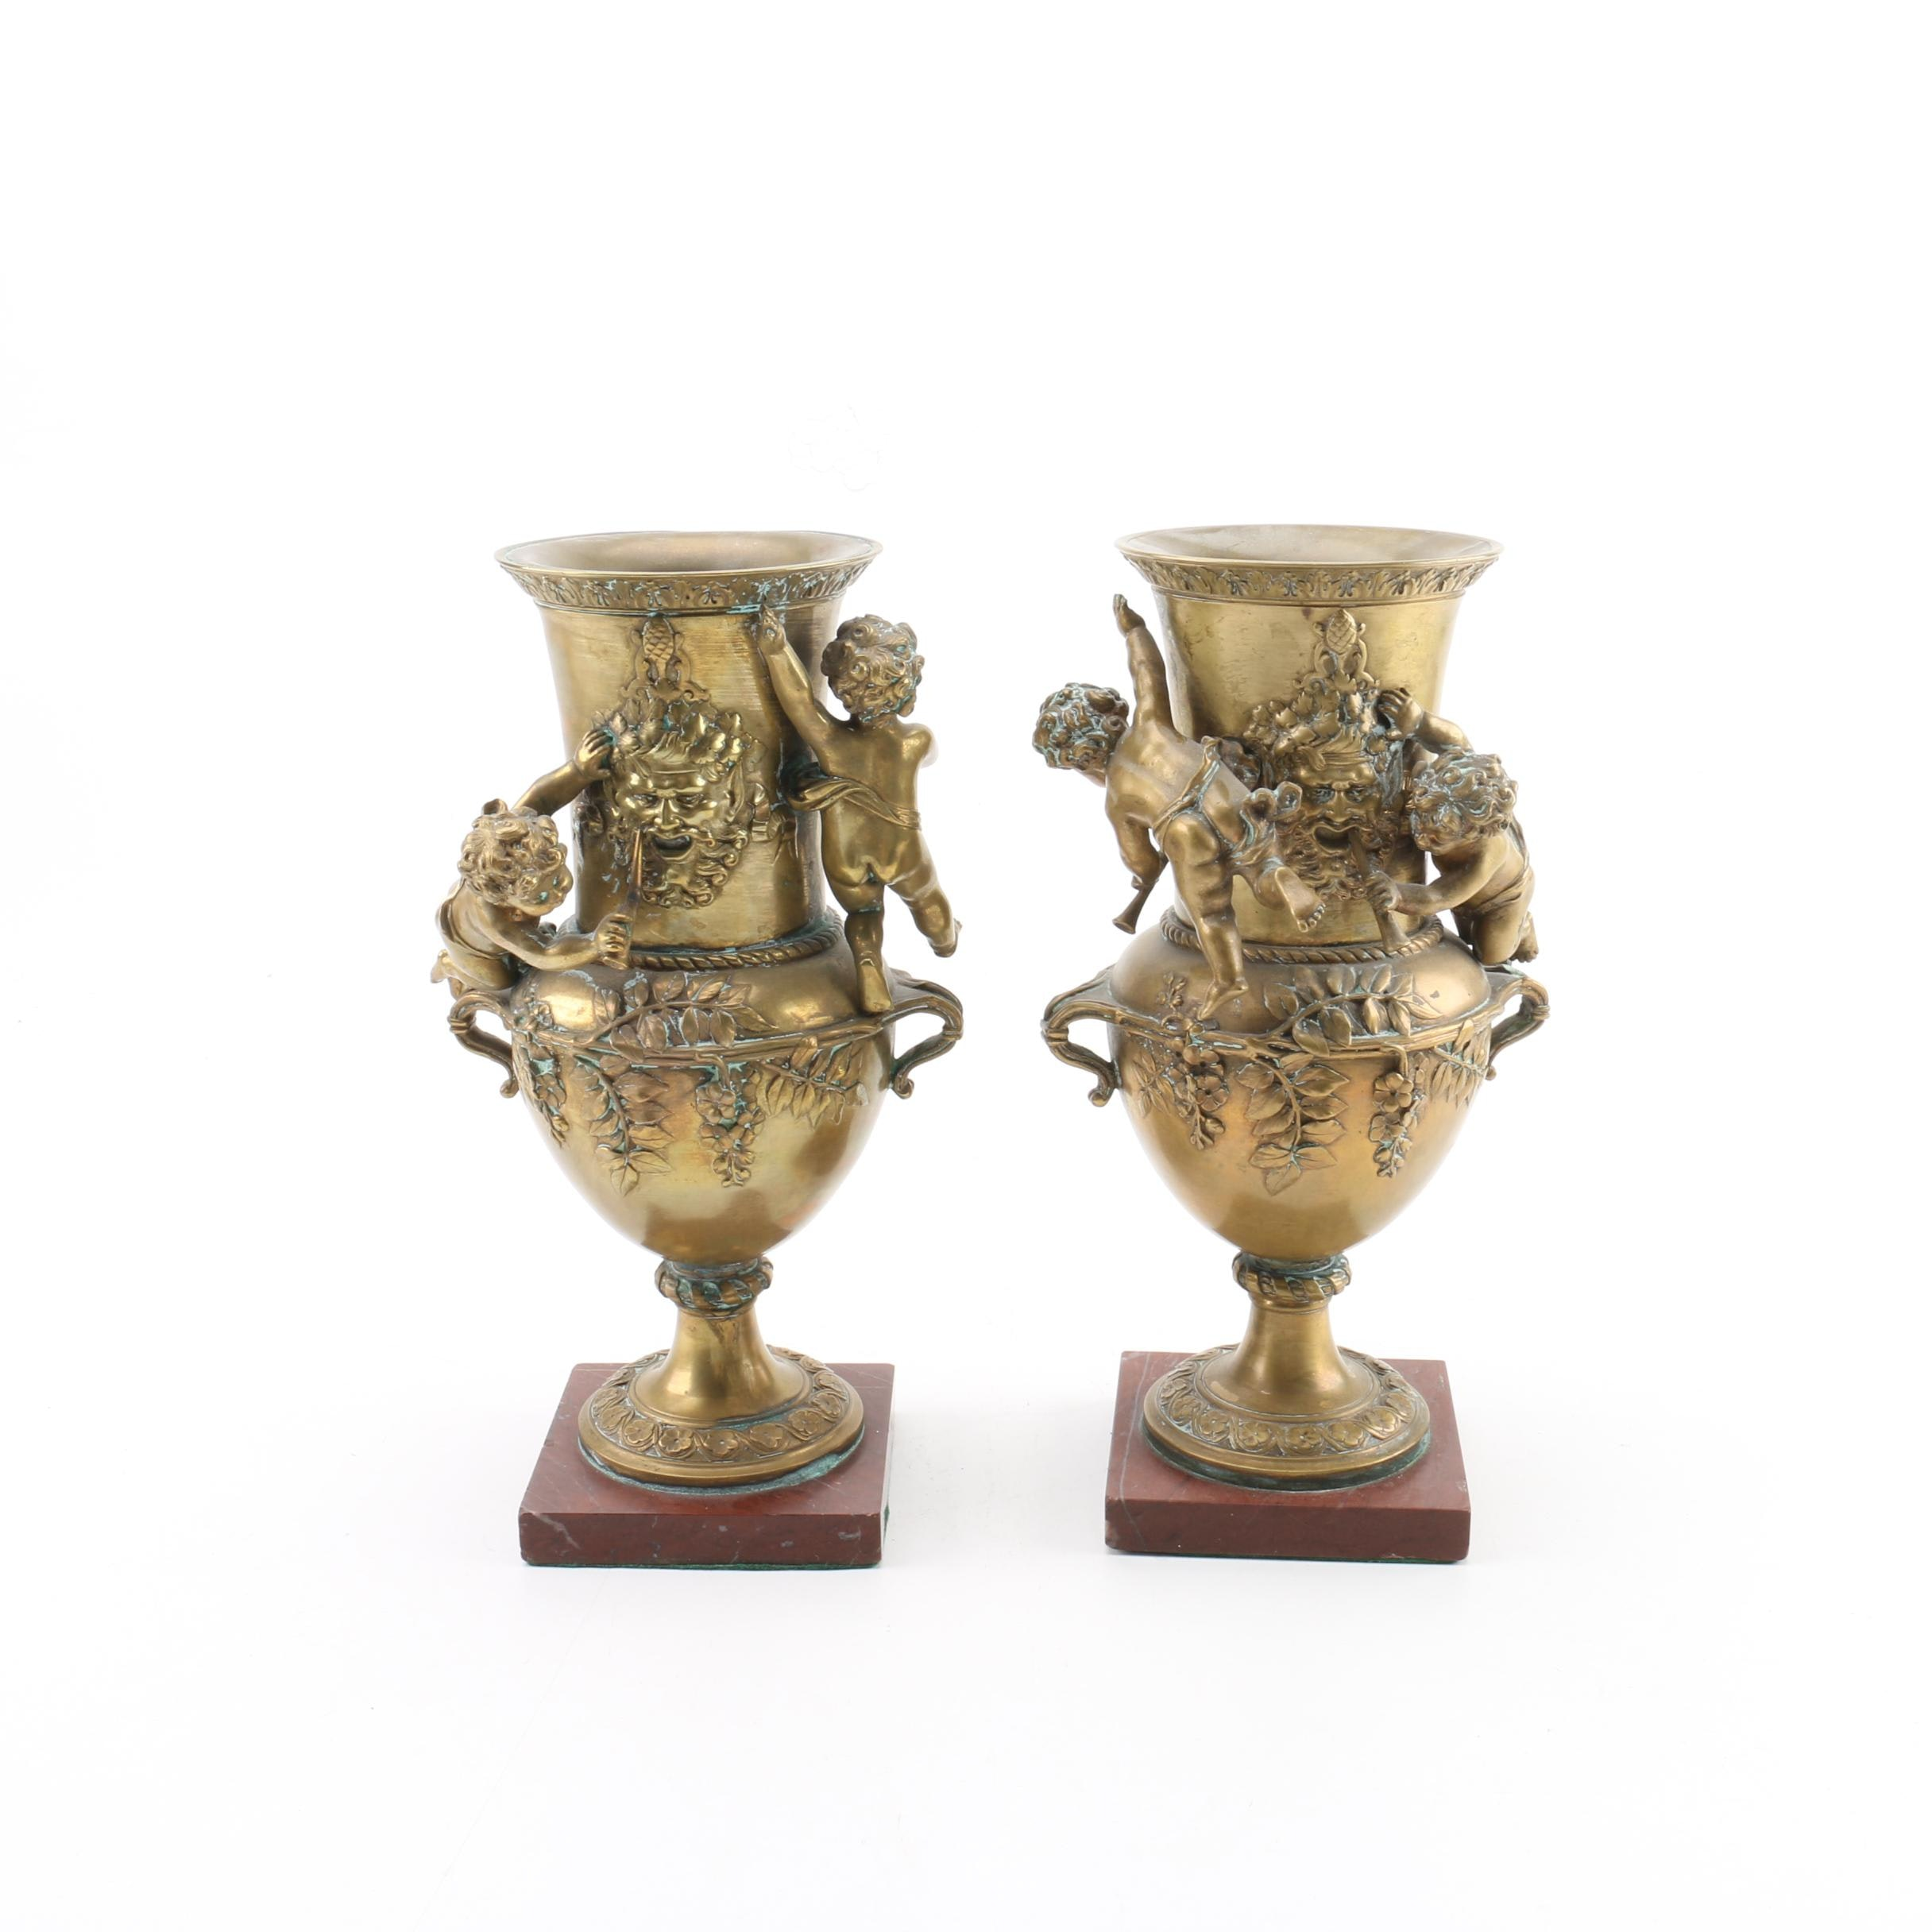 Neoclassical Style Brass Urns with Putti Motif on Rouge Marble Bases